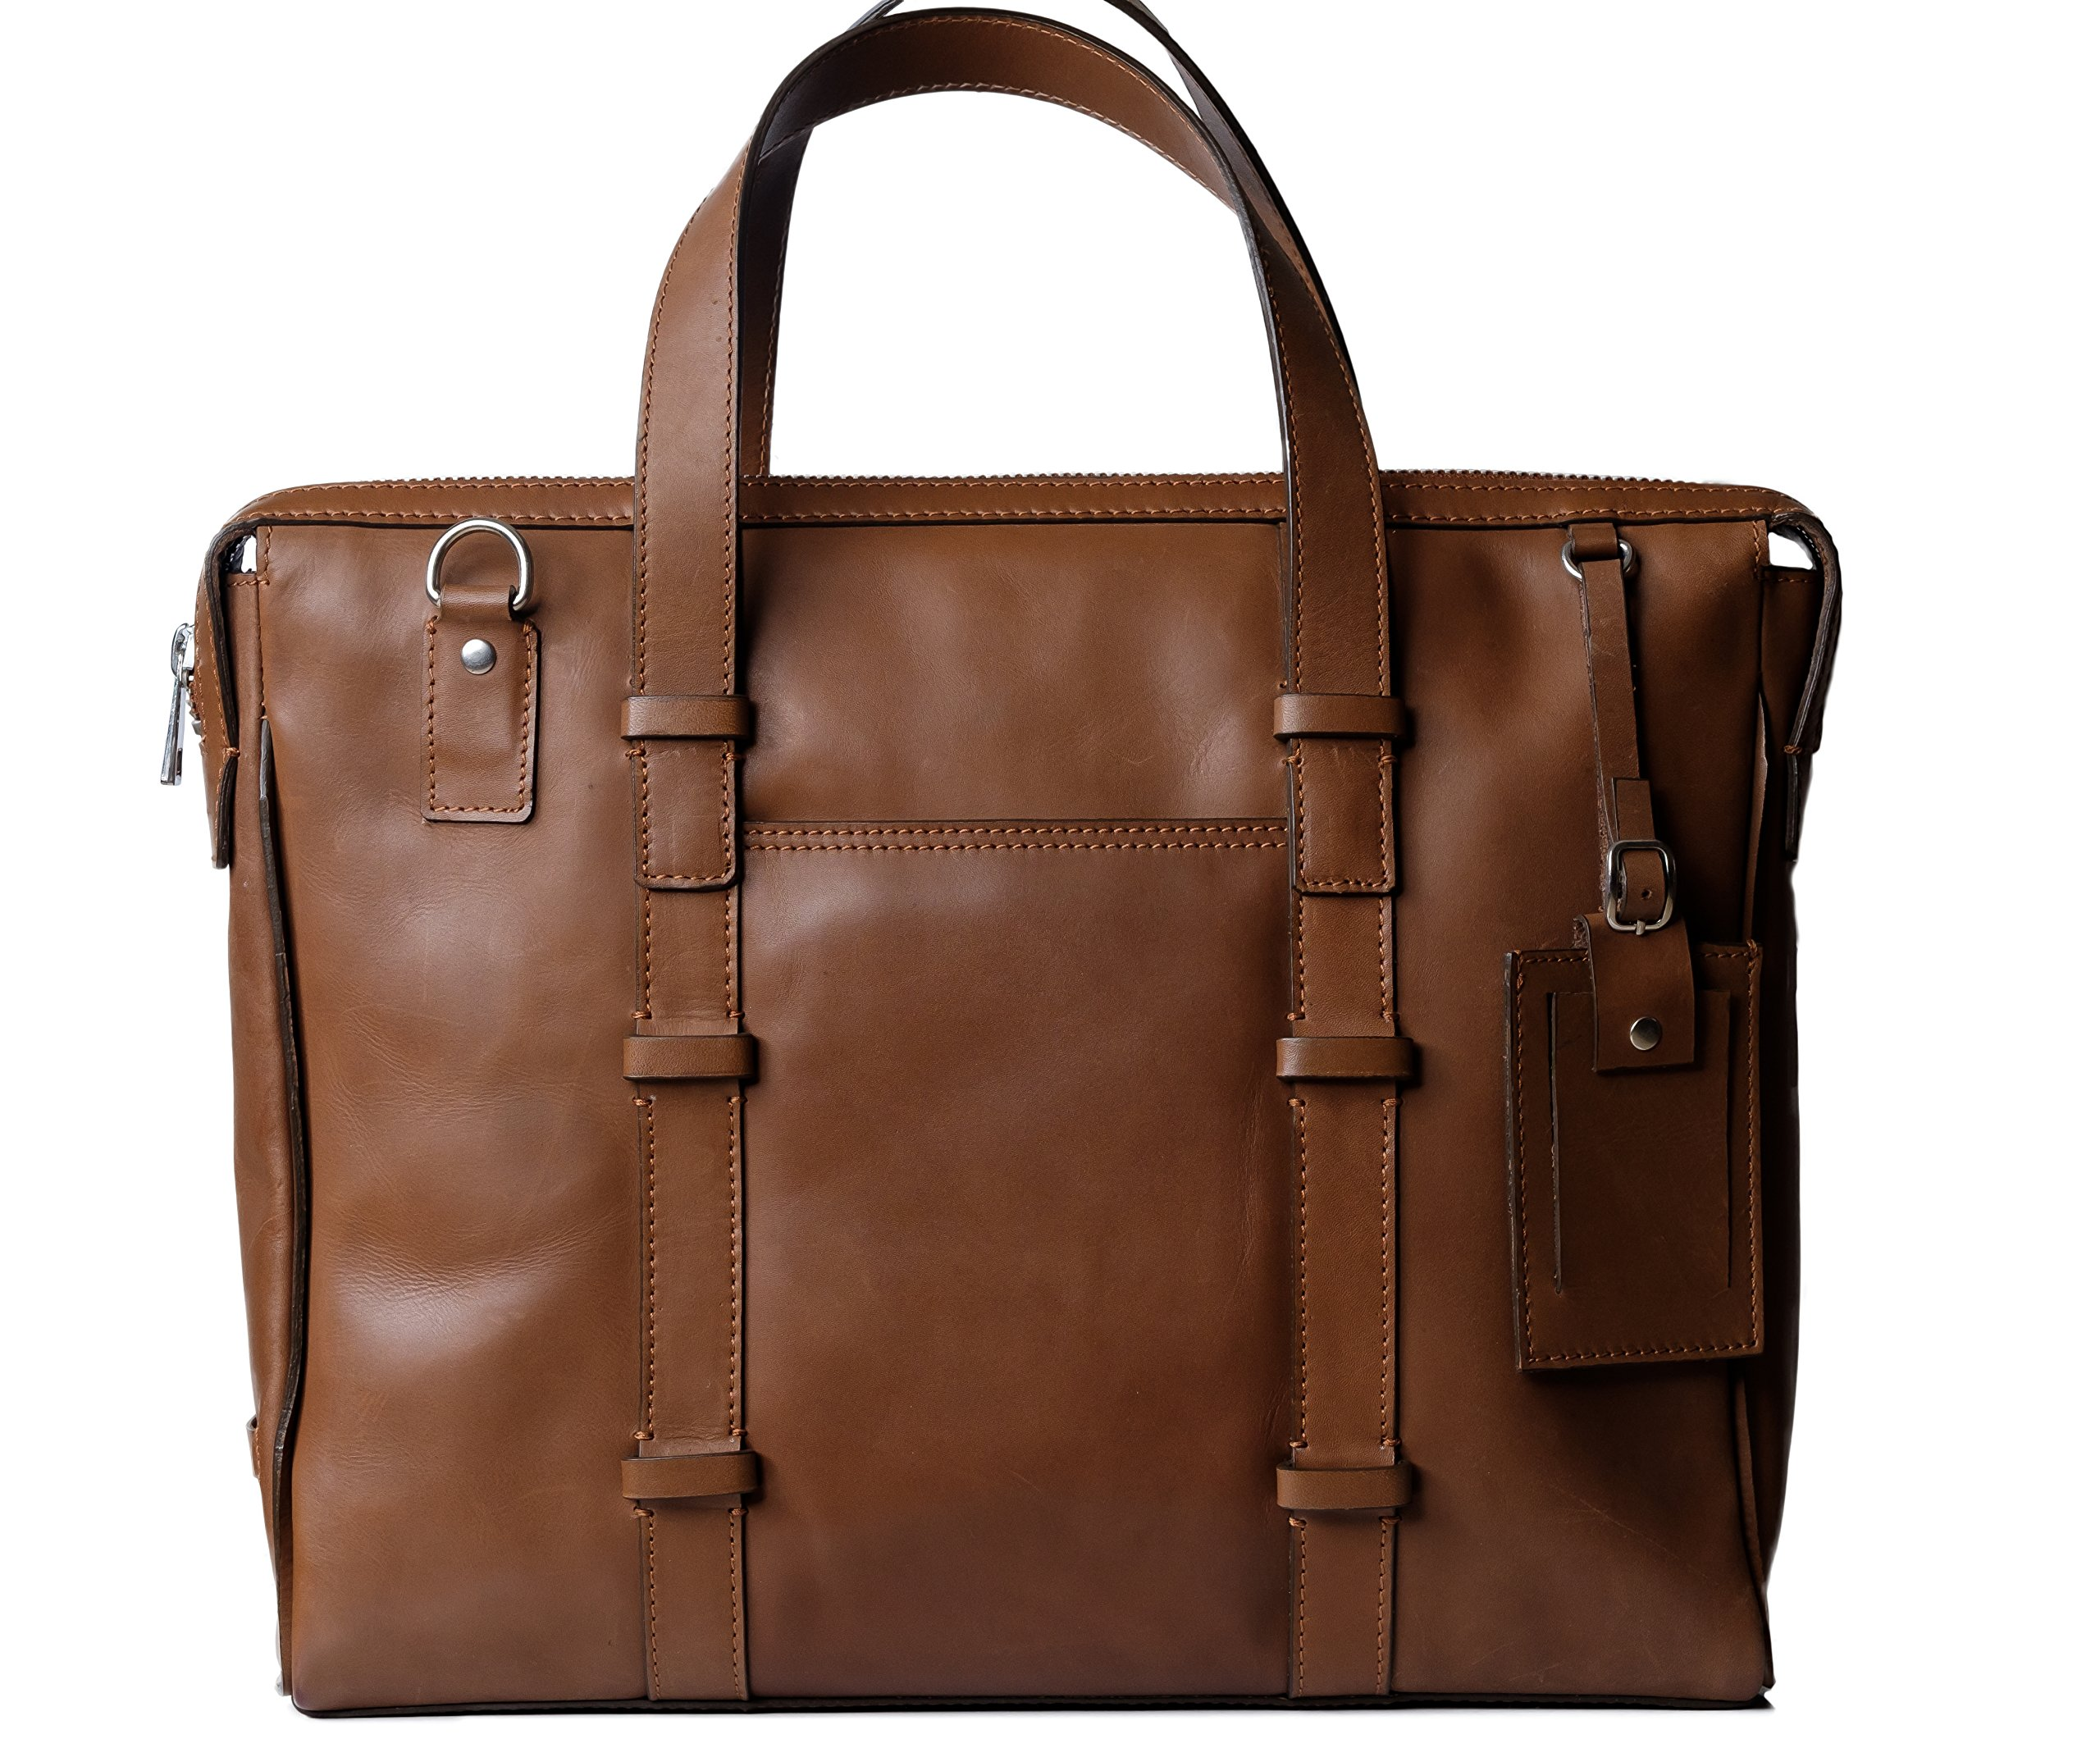 Genuine Leather Laptop Messenger Bag/Handbag for Men & Women, BAILEY, Compact Executive Bag fits 15.4 inch Laptop, 15 inch by 12 inch by 3 inch (Brown) by Ladderback by Ladderback (Image #1)